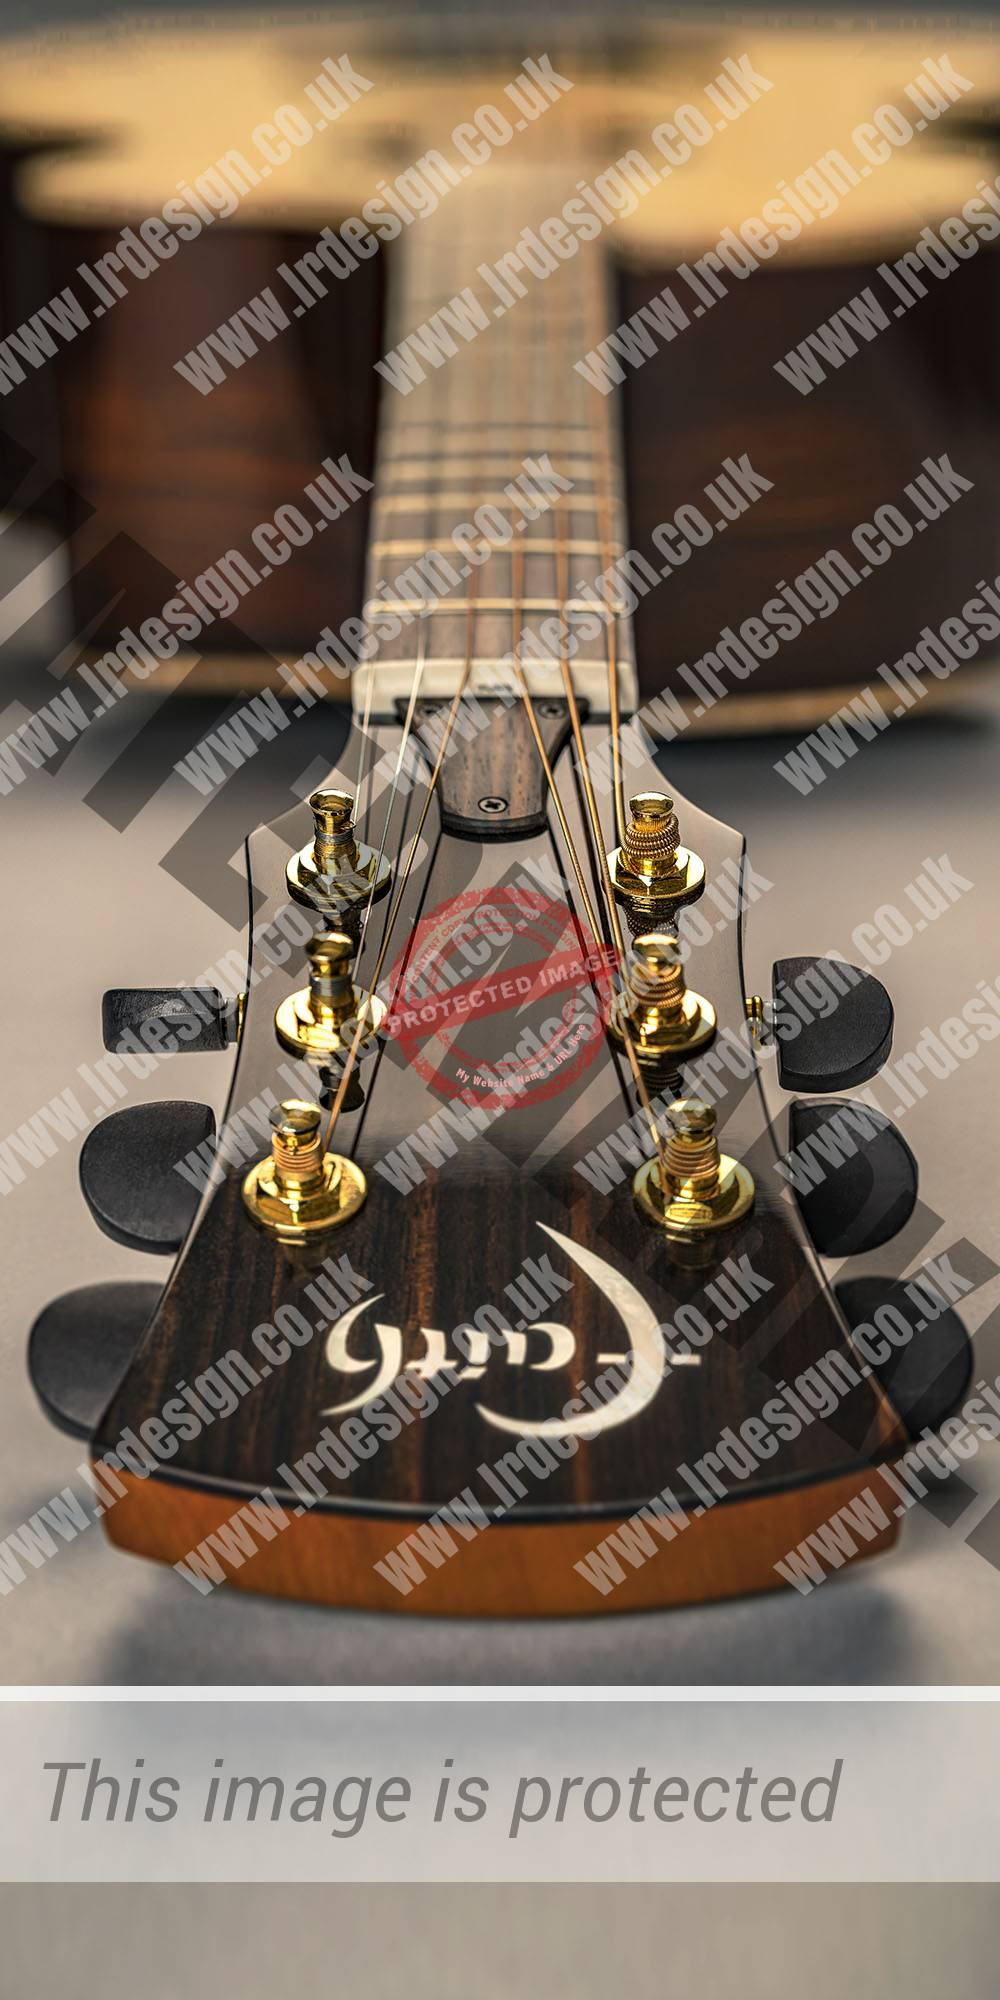 Faith acoustic guitar, close up of the headstock, tuning pegs and logo.